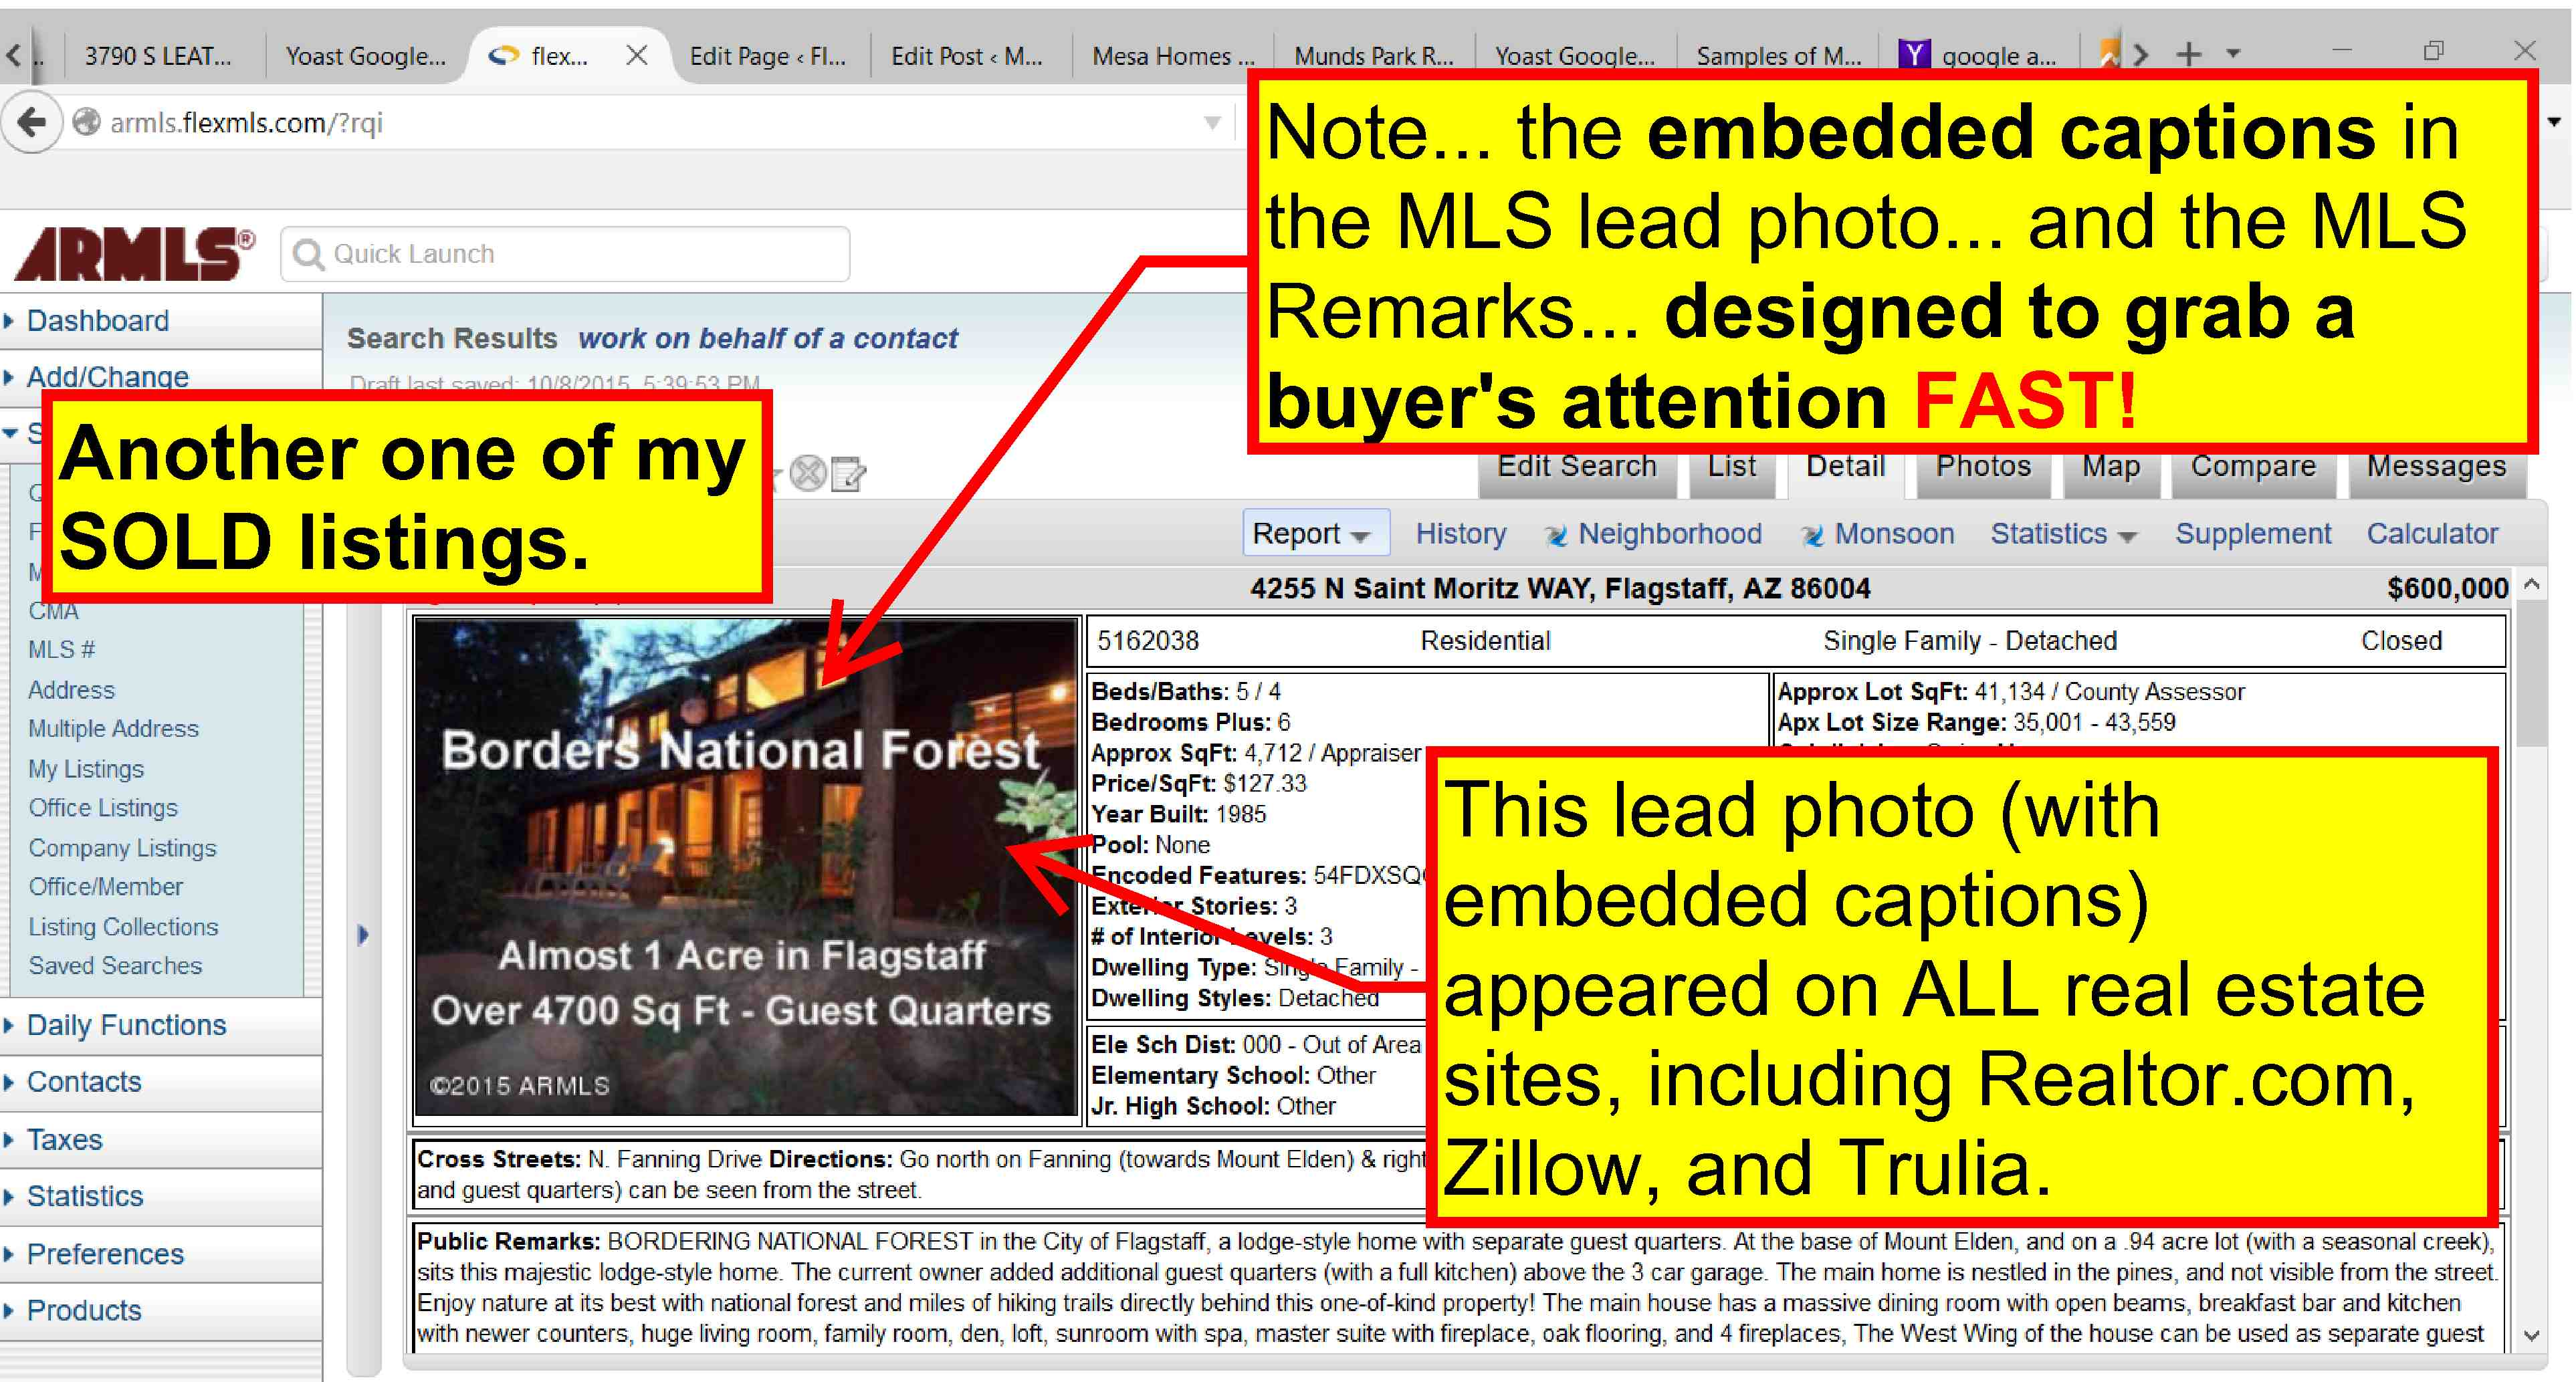 My listings have embedded captions in the lead photos which appear on ALL real estate websites, including Realtor.com, Trulia, and Zillow.